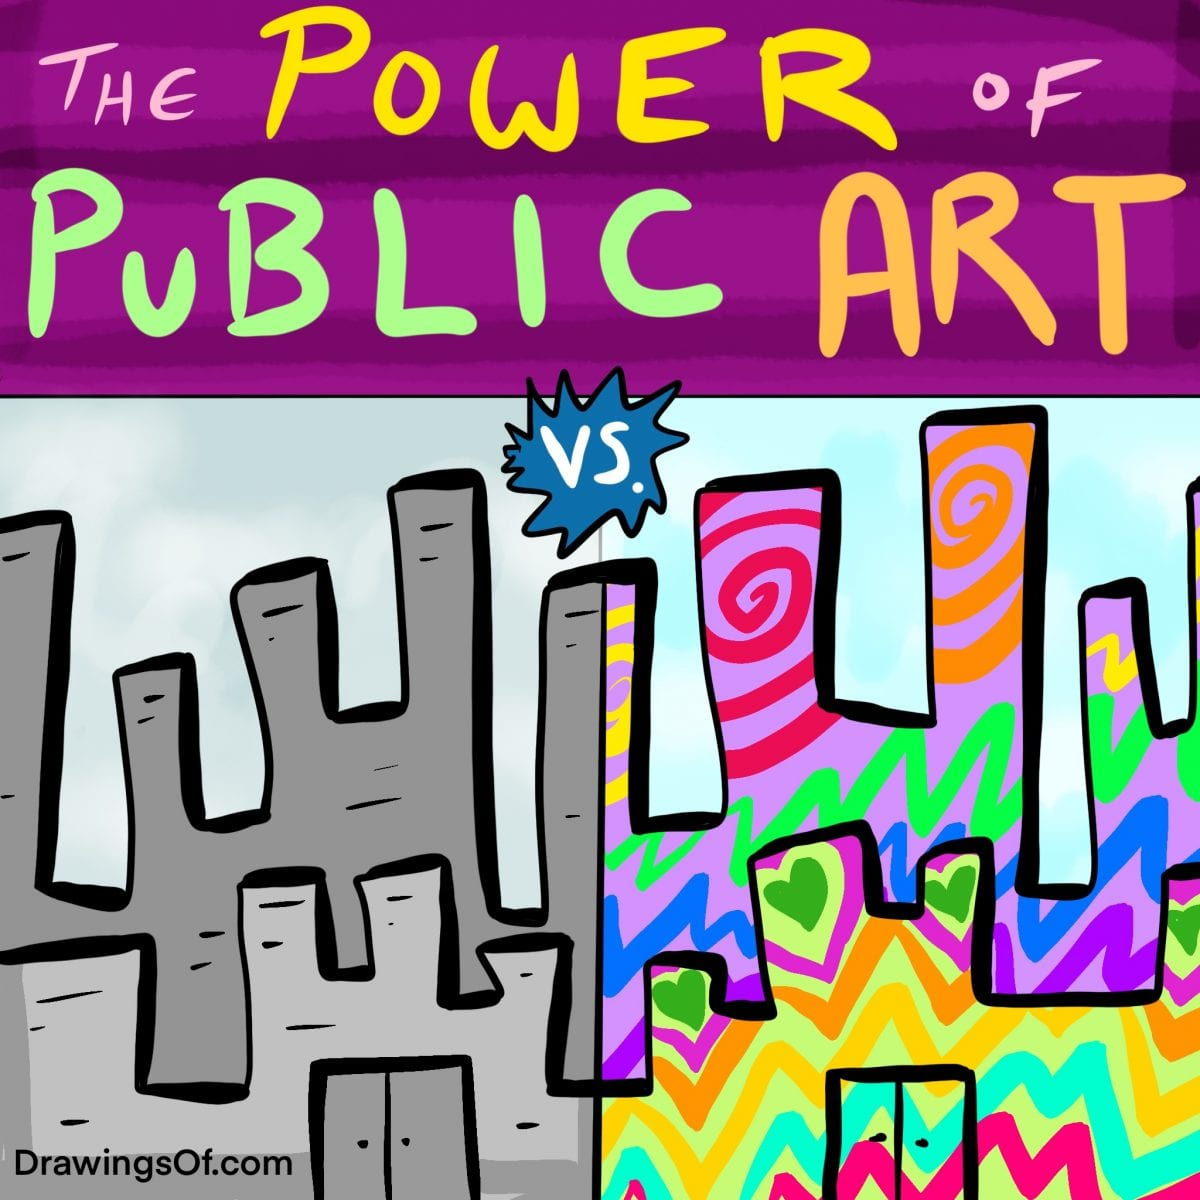 Why is public art important and powerful?